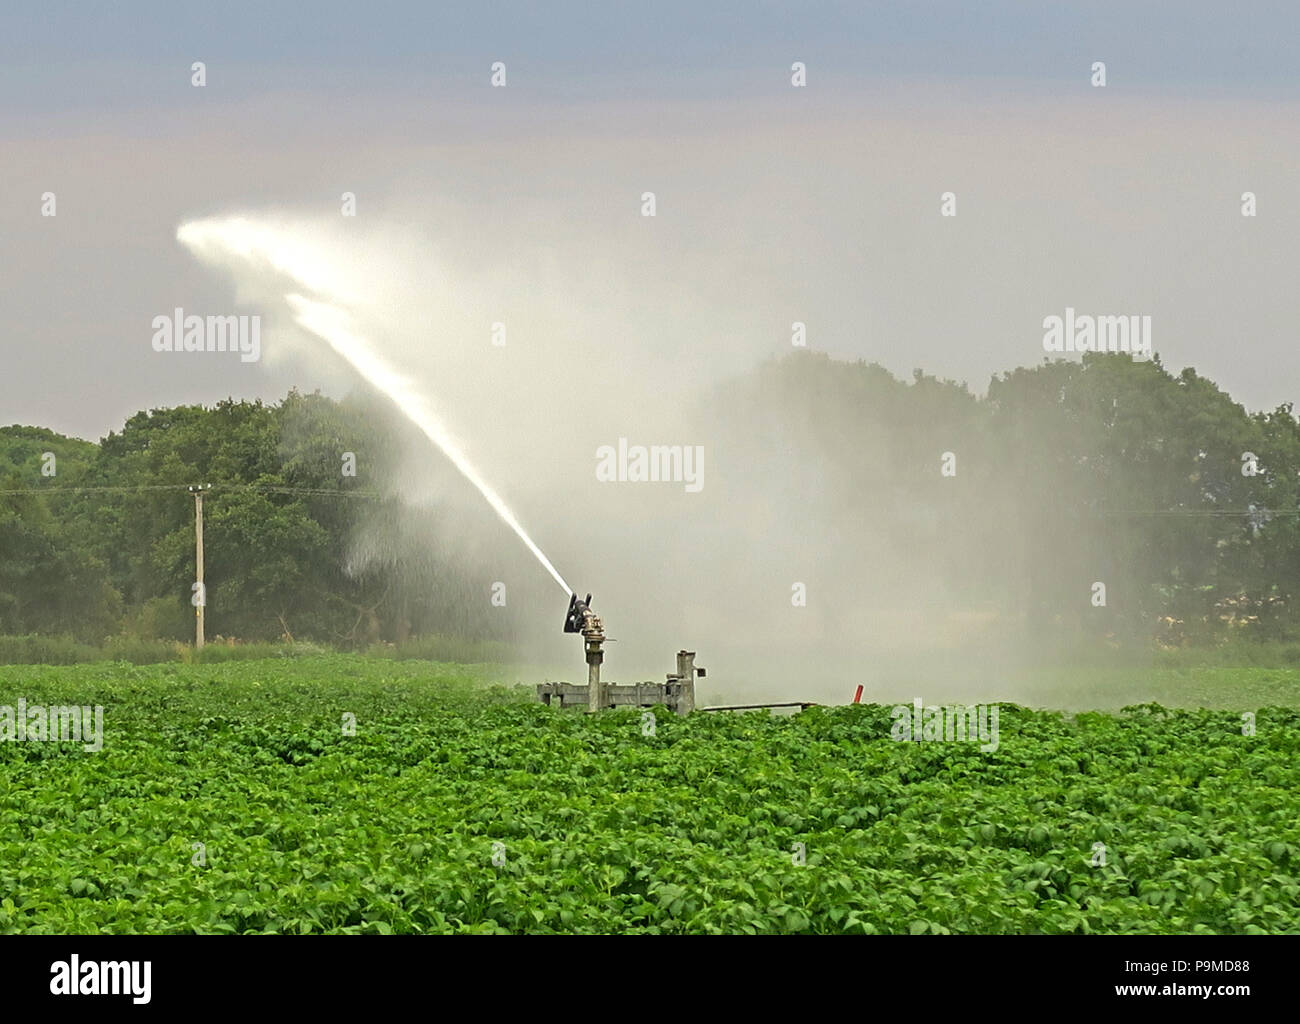 @HotpixUK,GoTonySmith,Water sprinkler,farm,in a,Yorkshire Crop field,potatoes,Summer,England,UK,potato,potato field,wasting water,drought,climate change,watering,hosepipe ban,hosepipe,ban,water shortage,centre-pivot irrigation,system,Bawtry,green,water-wheel and circle irrigation,water-wheel,and circle irrigation,equipment,Rotator style pivot applicator sprinkler,Rotator style,pivot applicator sprinkler,gallons of water,litres of water,End Gun style pivot applicator sprinkler,water supply,saving water,safeguard,water supplies